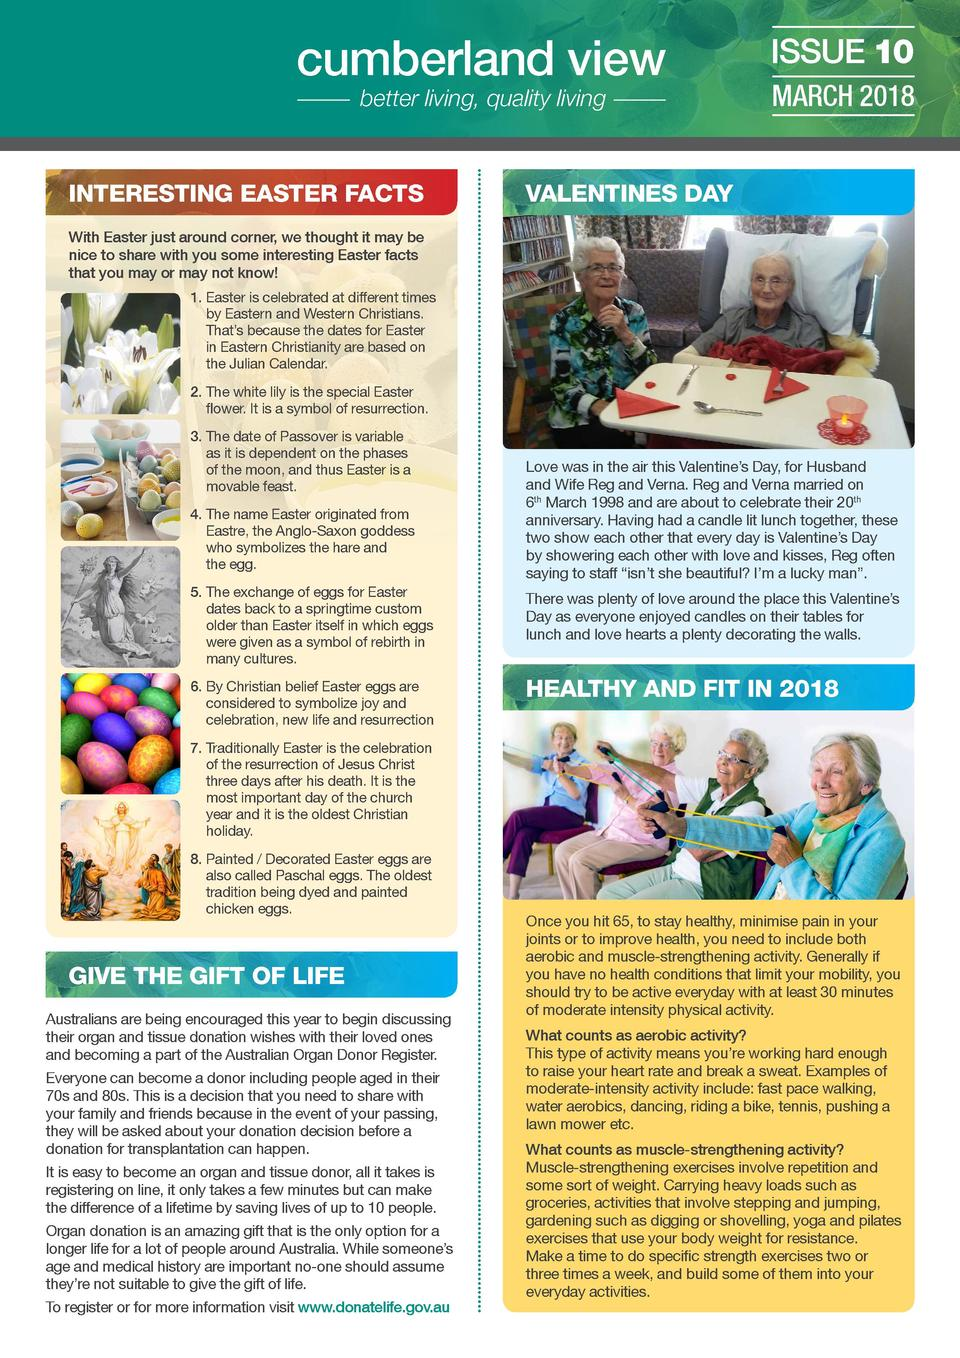 cumberland view better living, quality living  INTERESTING EASTER FACTS  ISSUE 10 MARCH 2018  VALENTINES DAY  With Easter ...